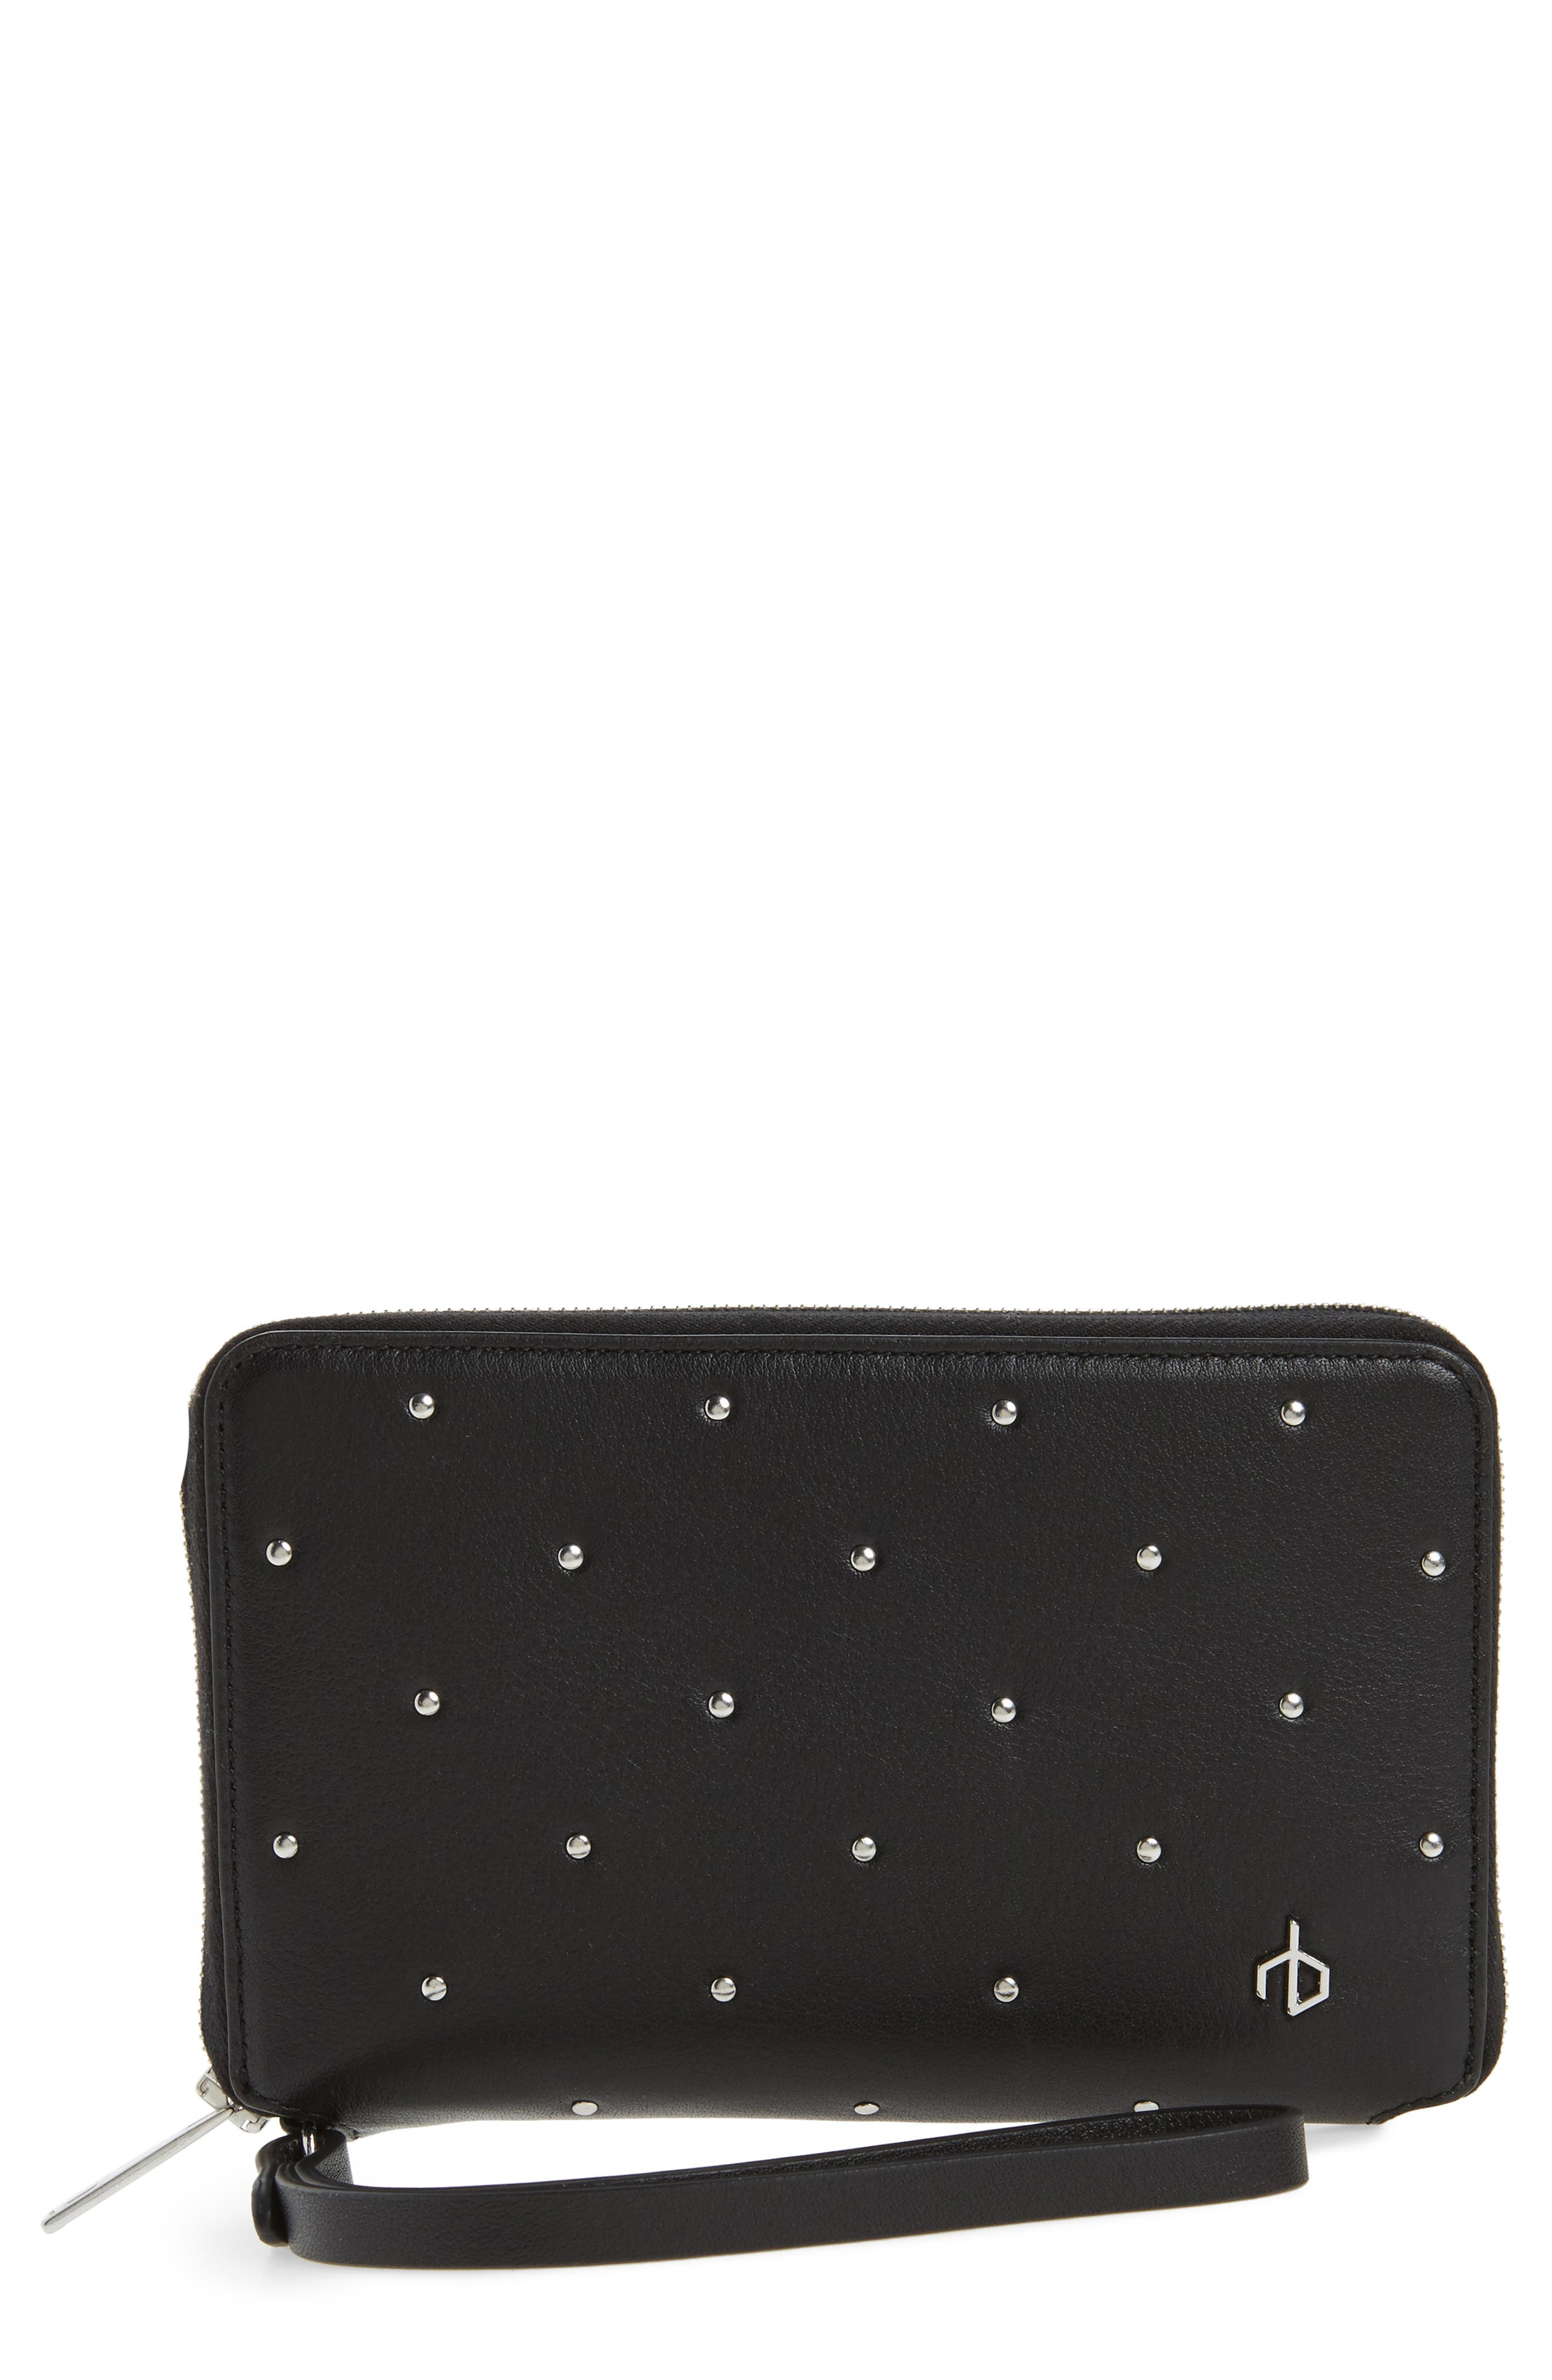 Studded Leather Smartphone Wallet,                             Main thumbnail 1, color,                             Black Studs